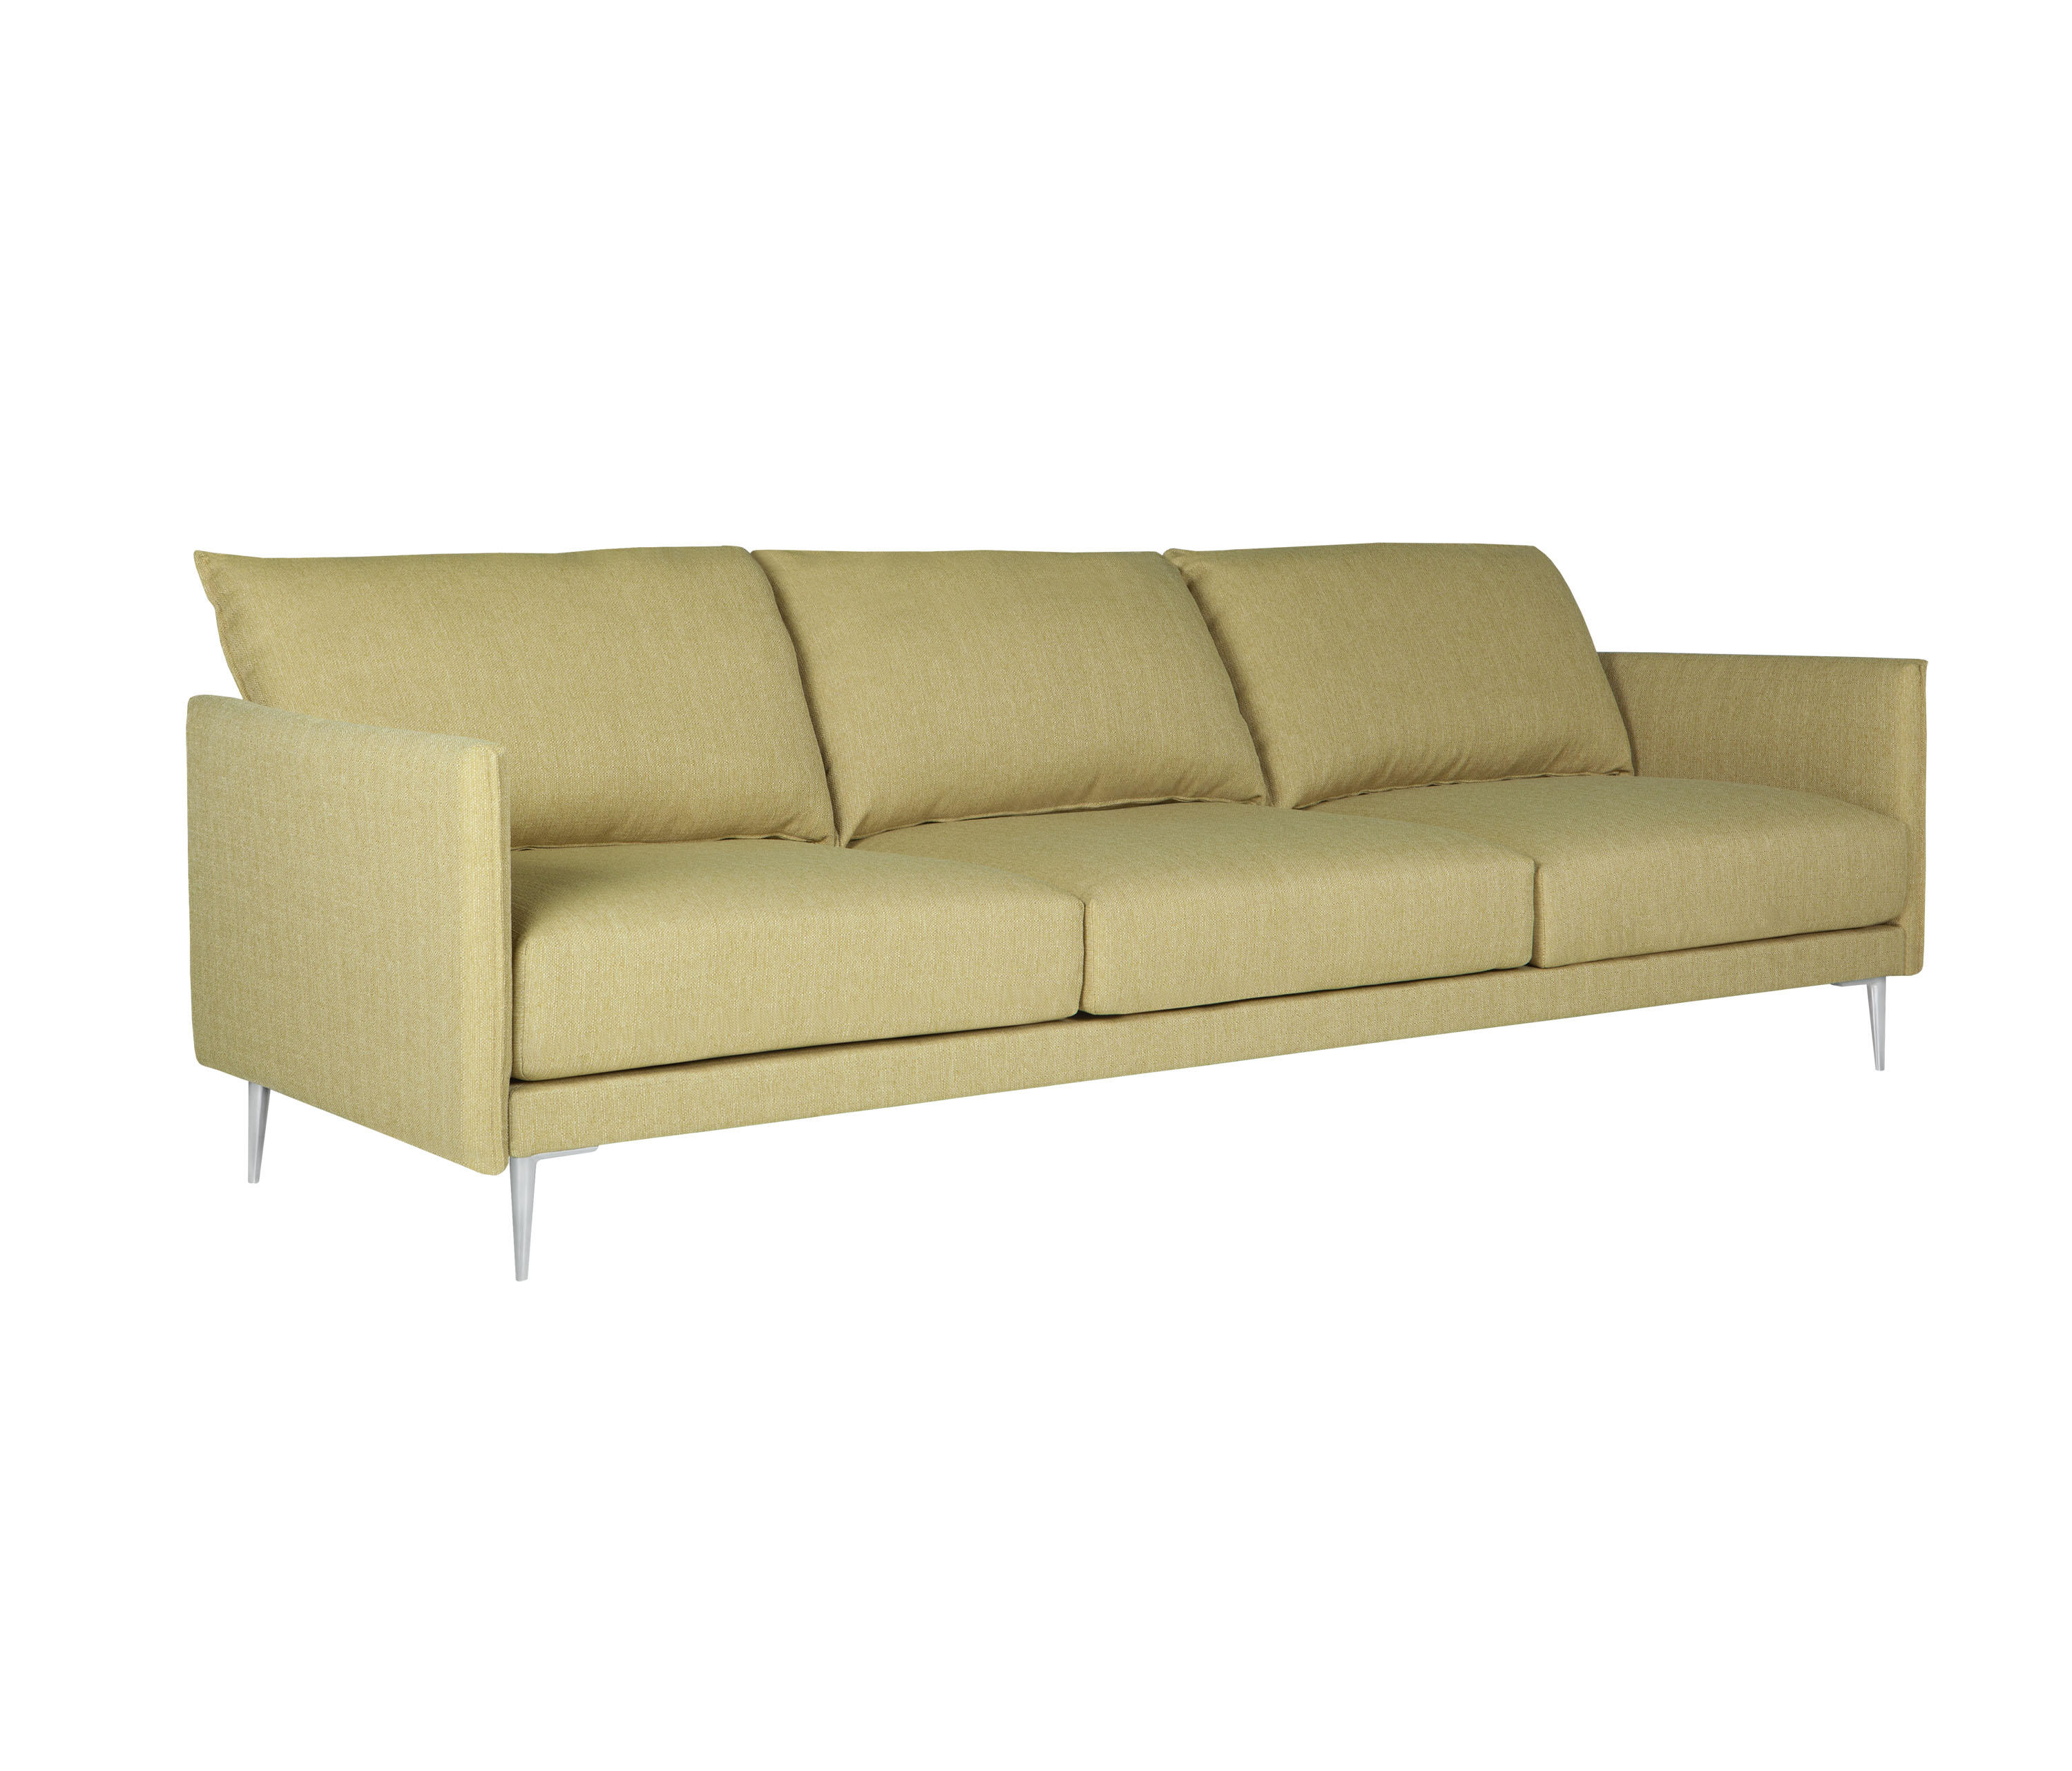 ALVA - Lounge sofas from SITS | Architonic